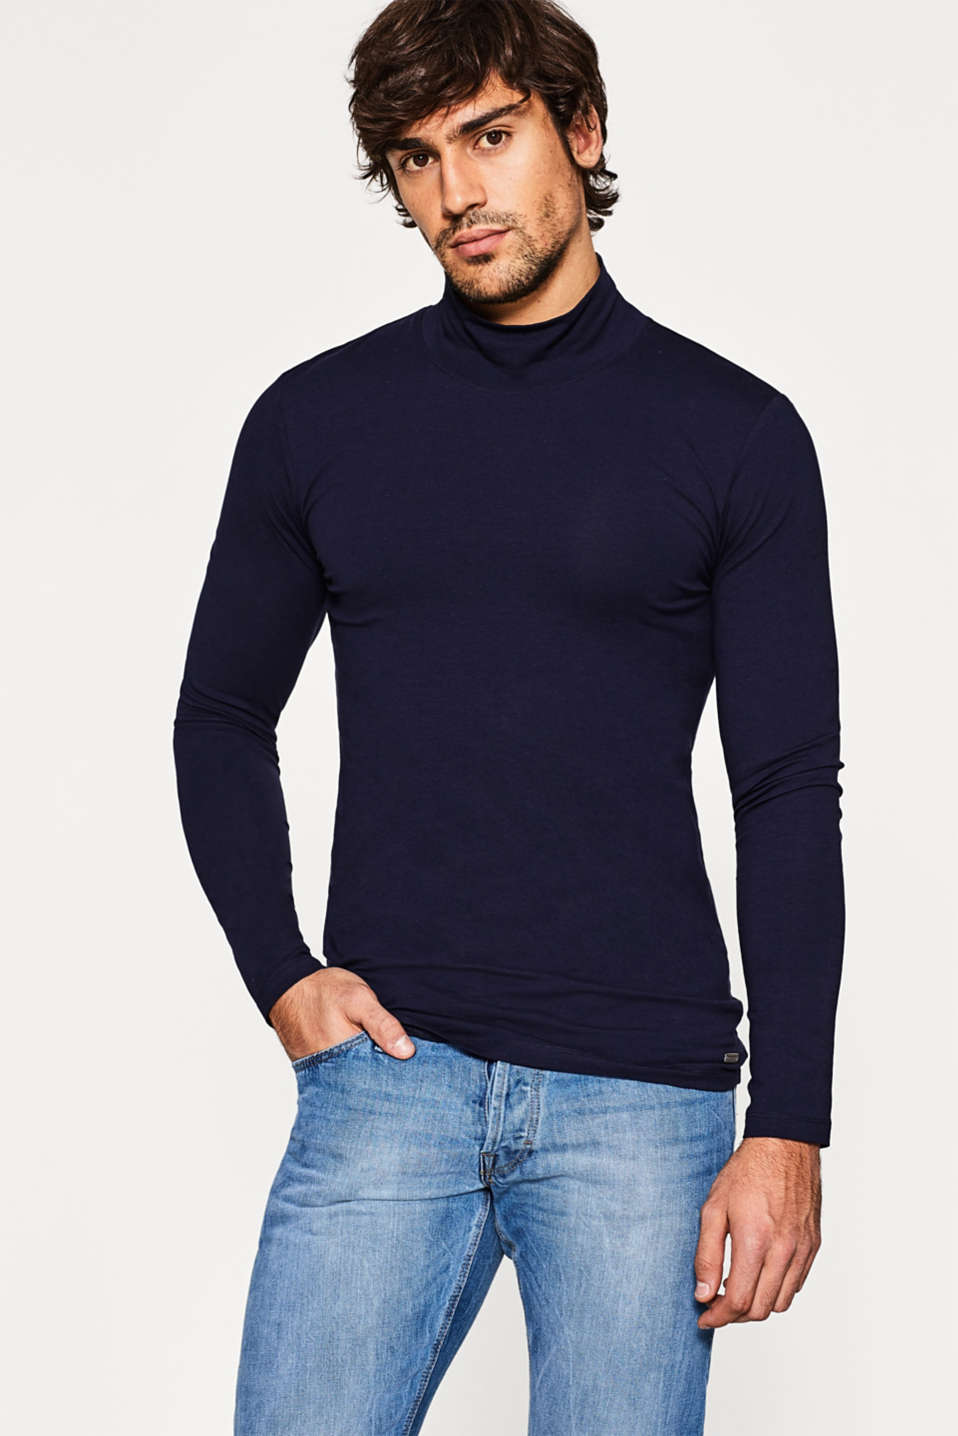 edc - Jersey long sleeve muscle top